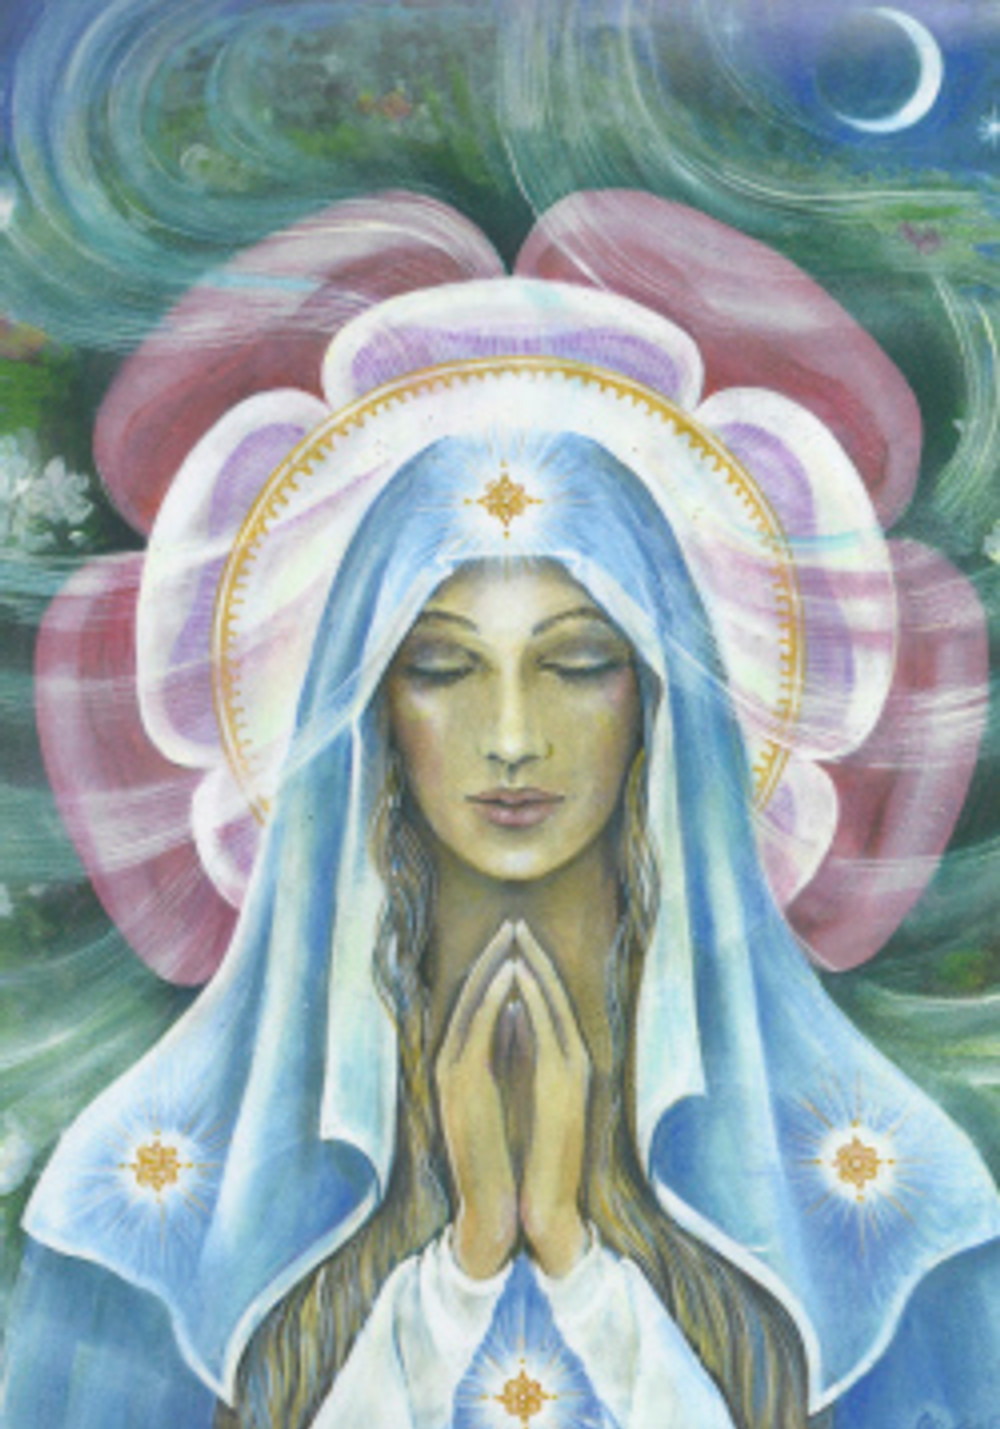 mother mary good